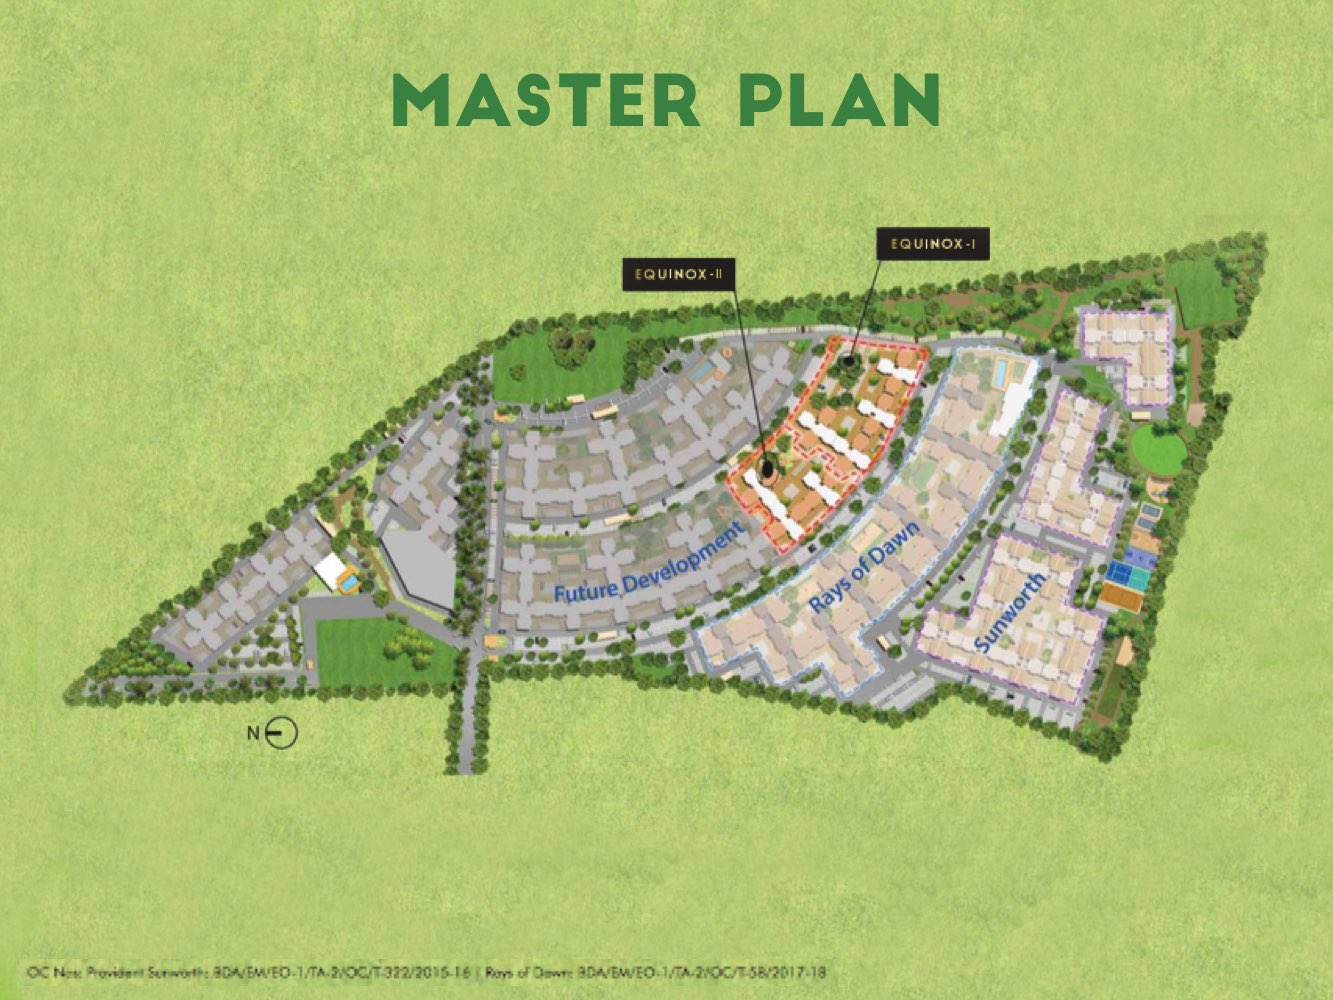 <?= $project->name; ?> masterplan